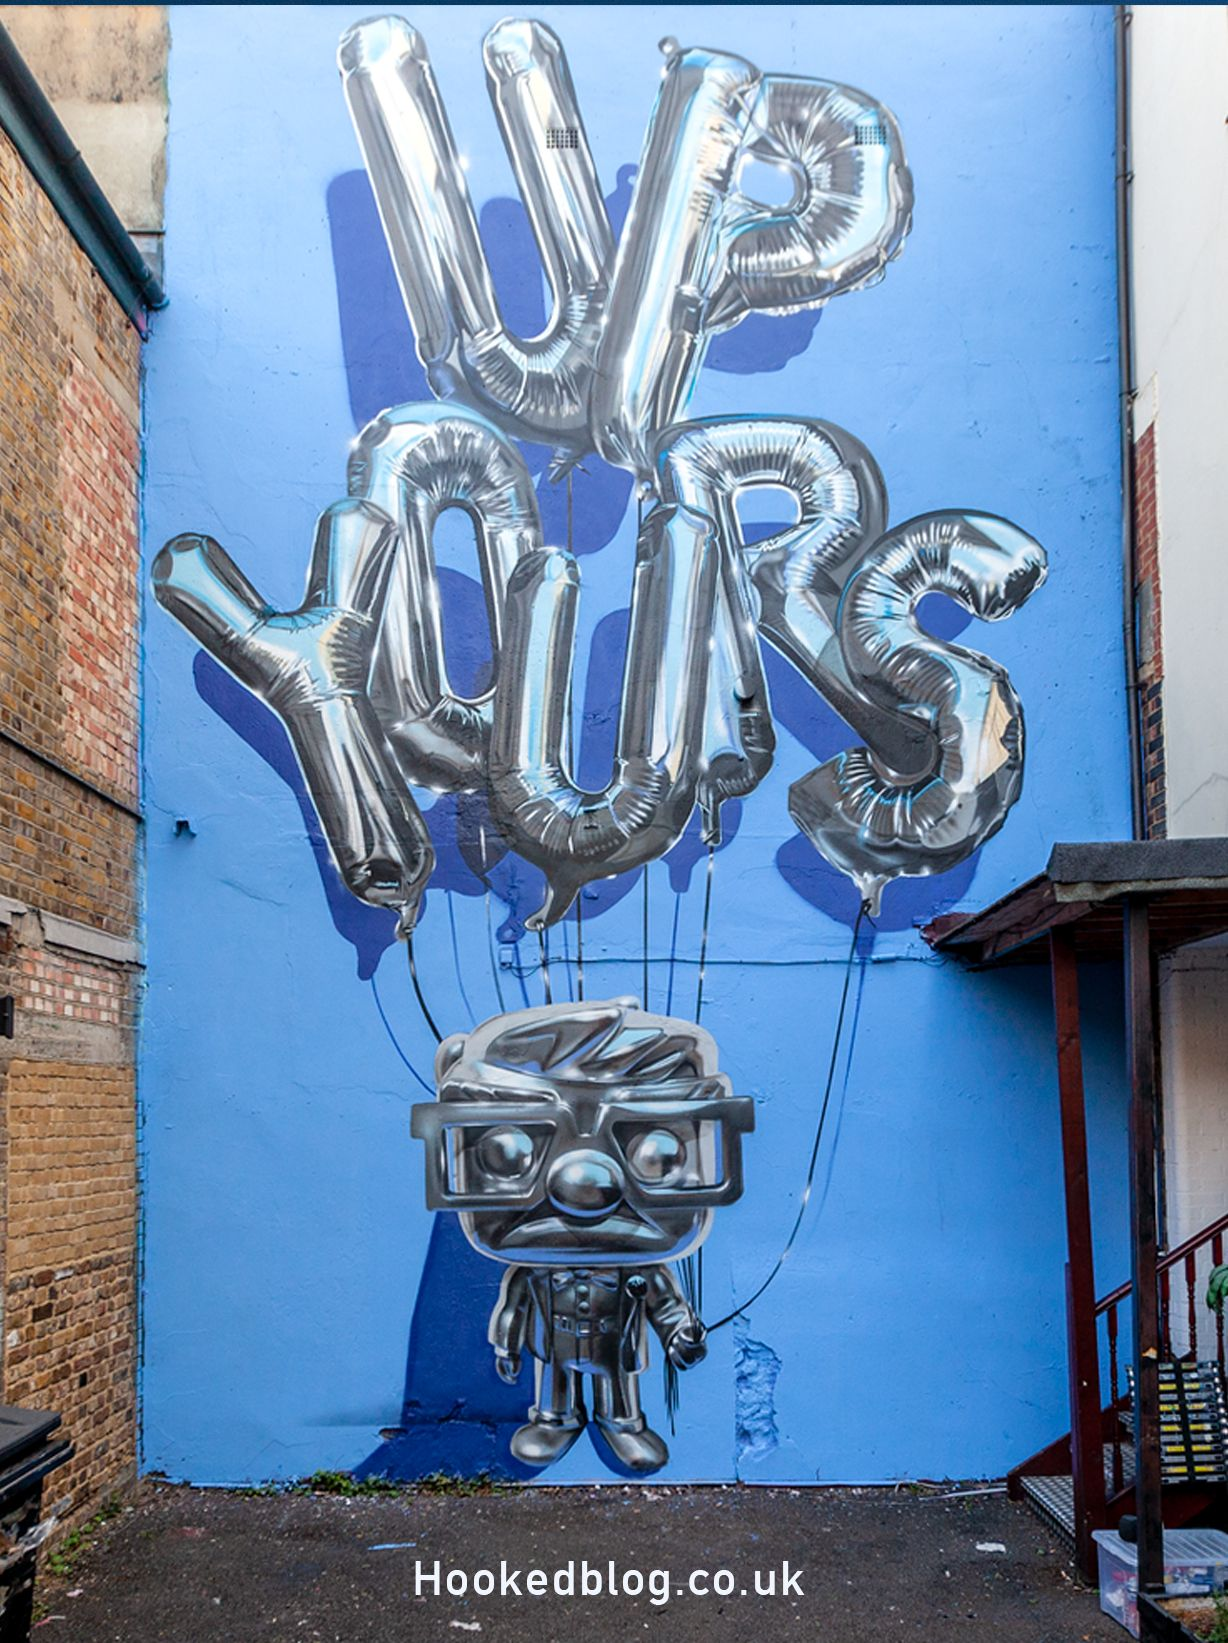 Hyper realistic up yours helium balloon mural painted by london graffiti artist fanakapan on heneage street off brick lane london